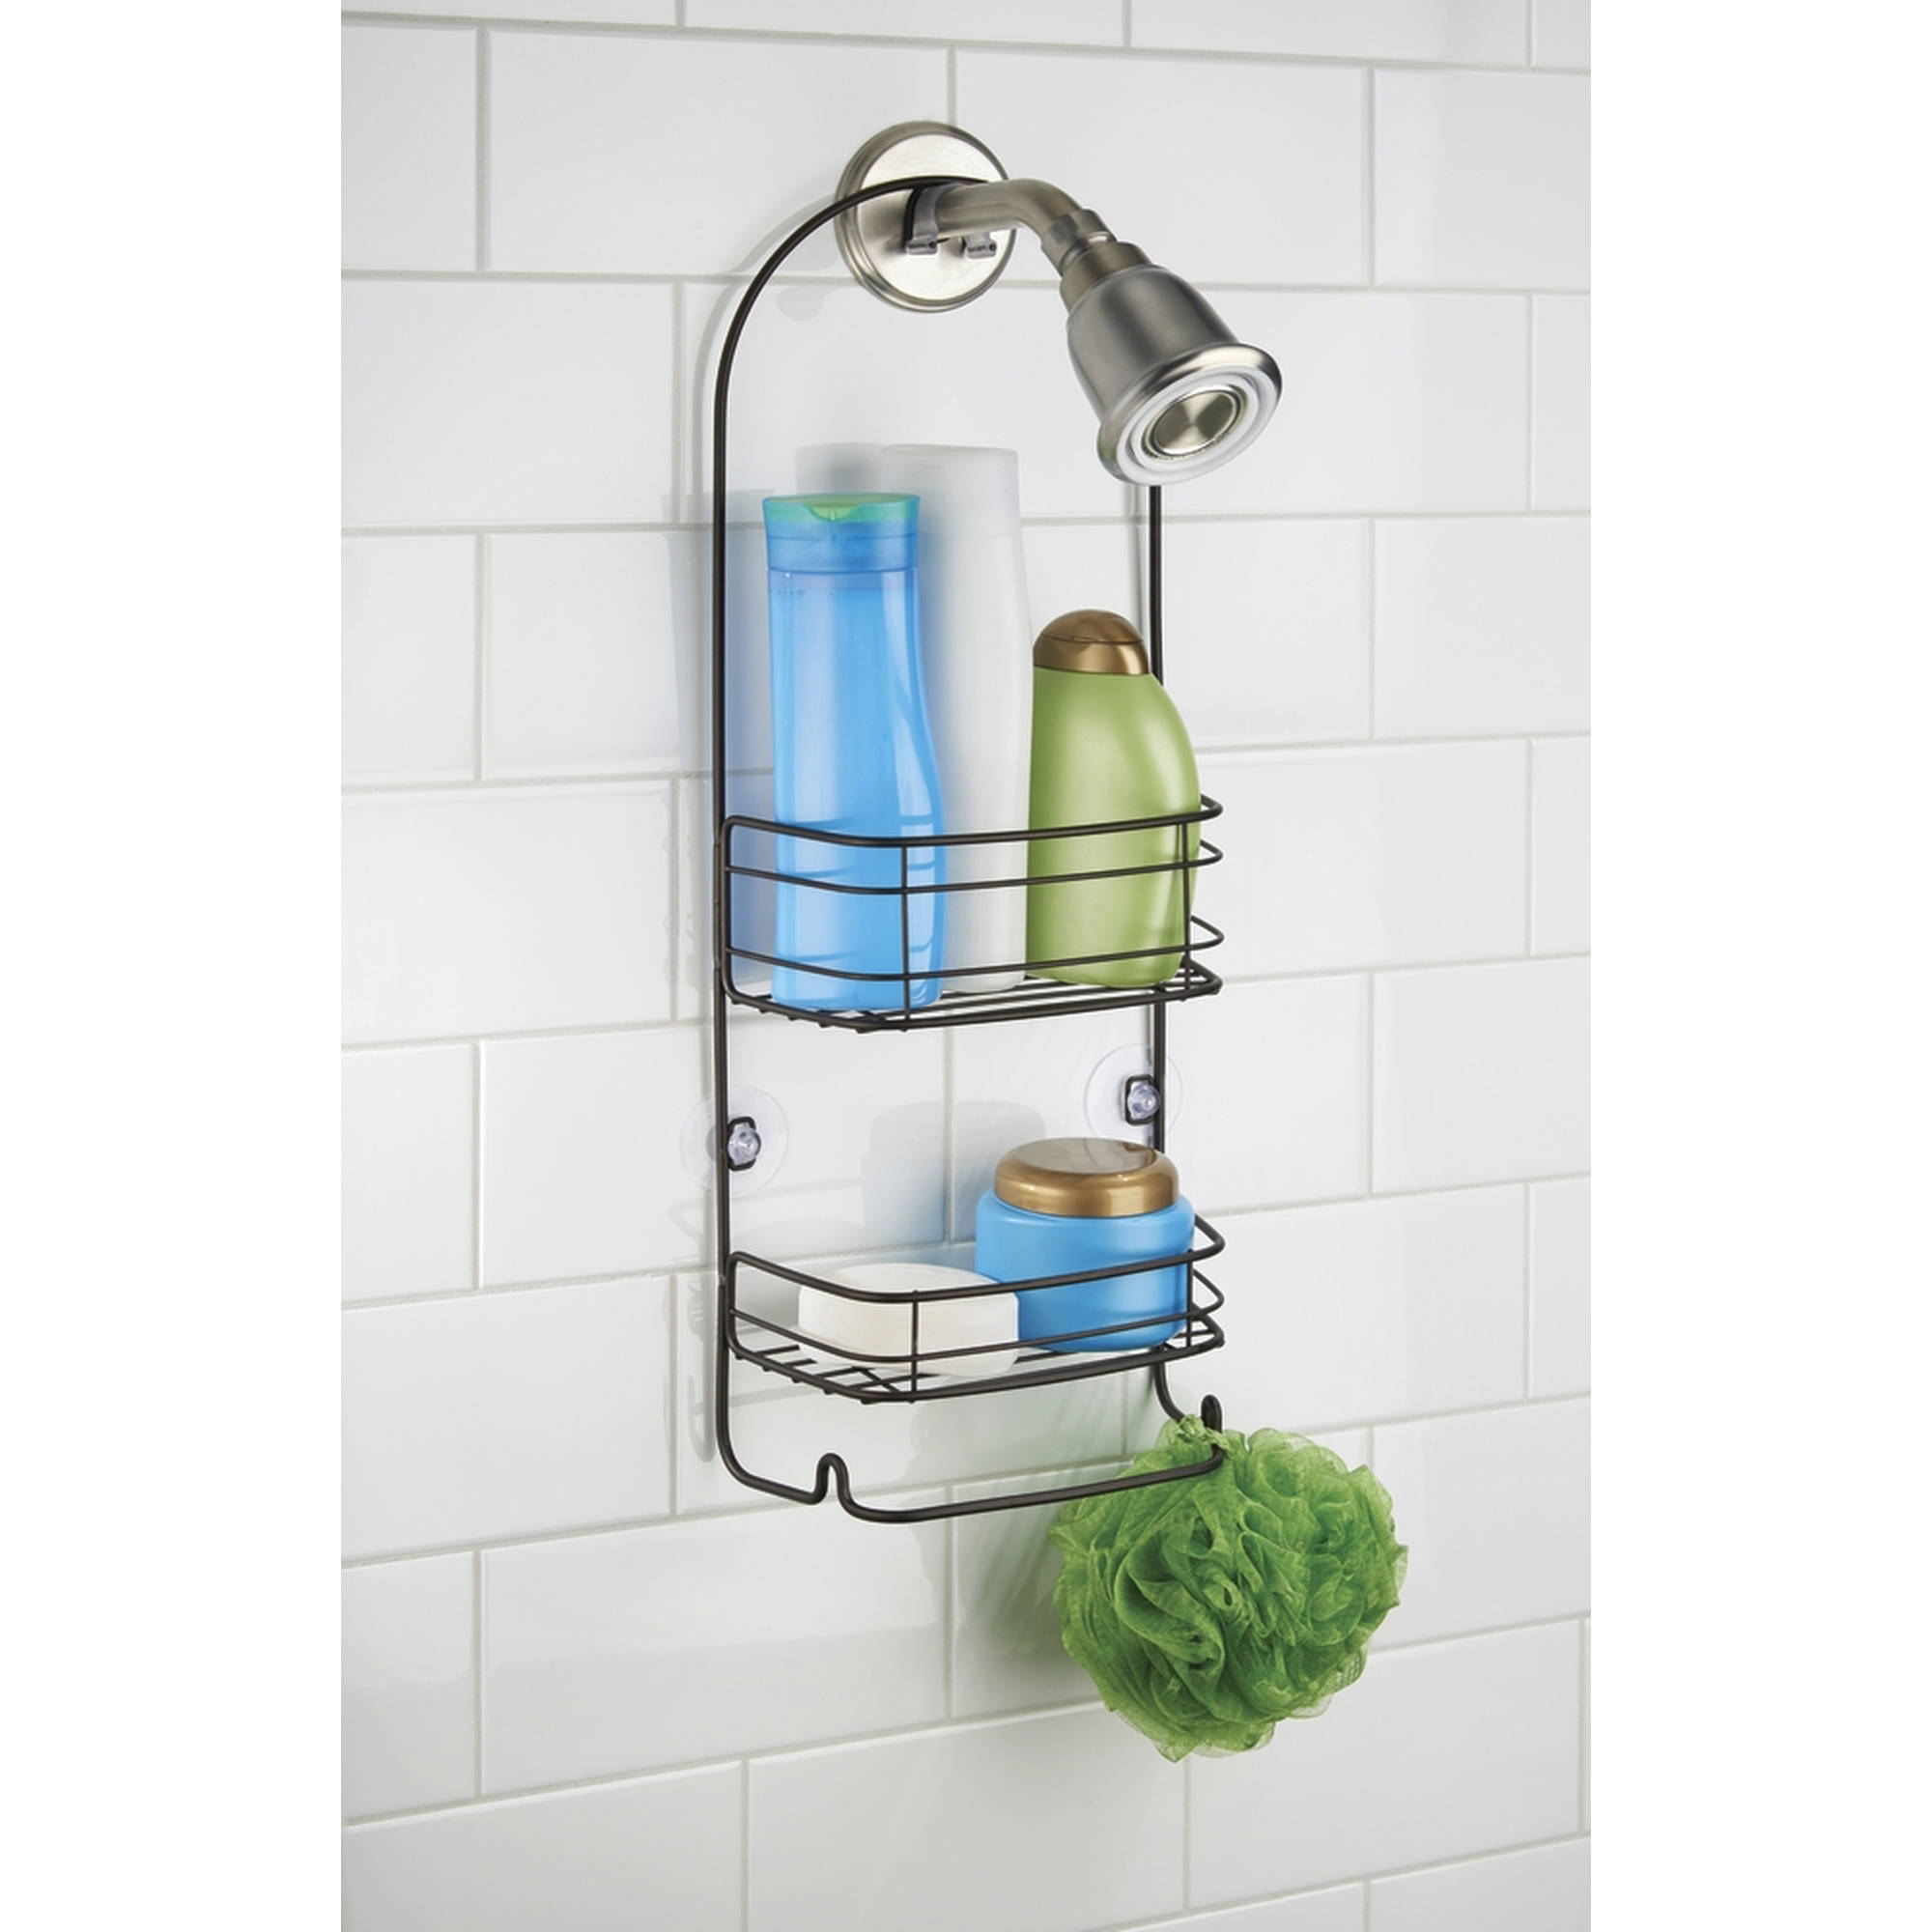 InterDesign Rondo Bathroom Shower Caddy for Shampoo, Conditioner, Soap by Generic